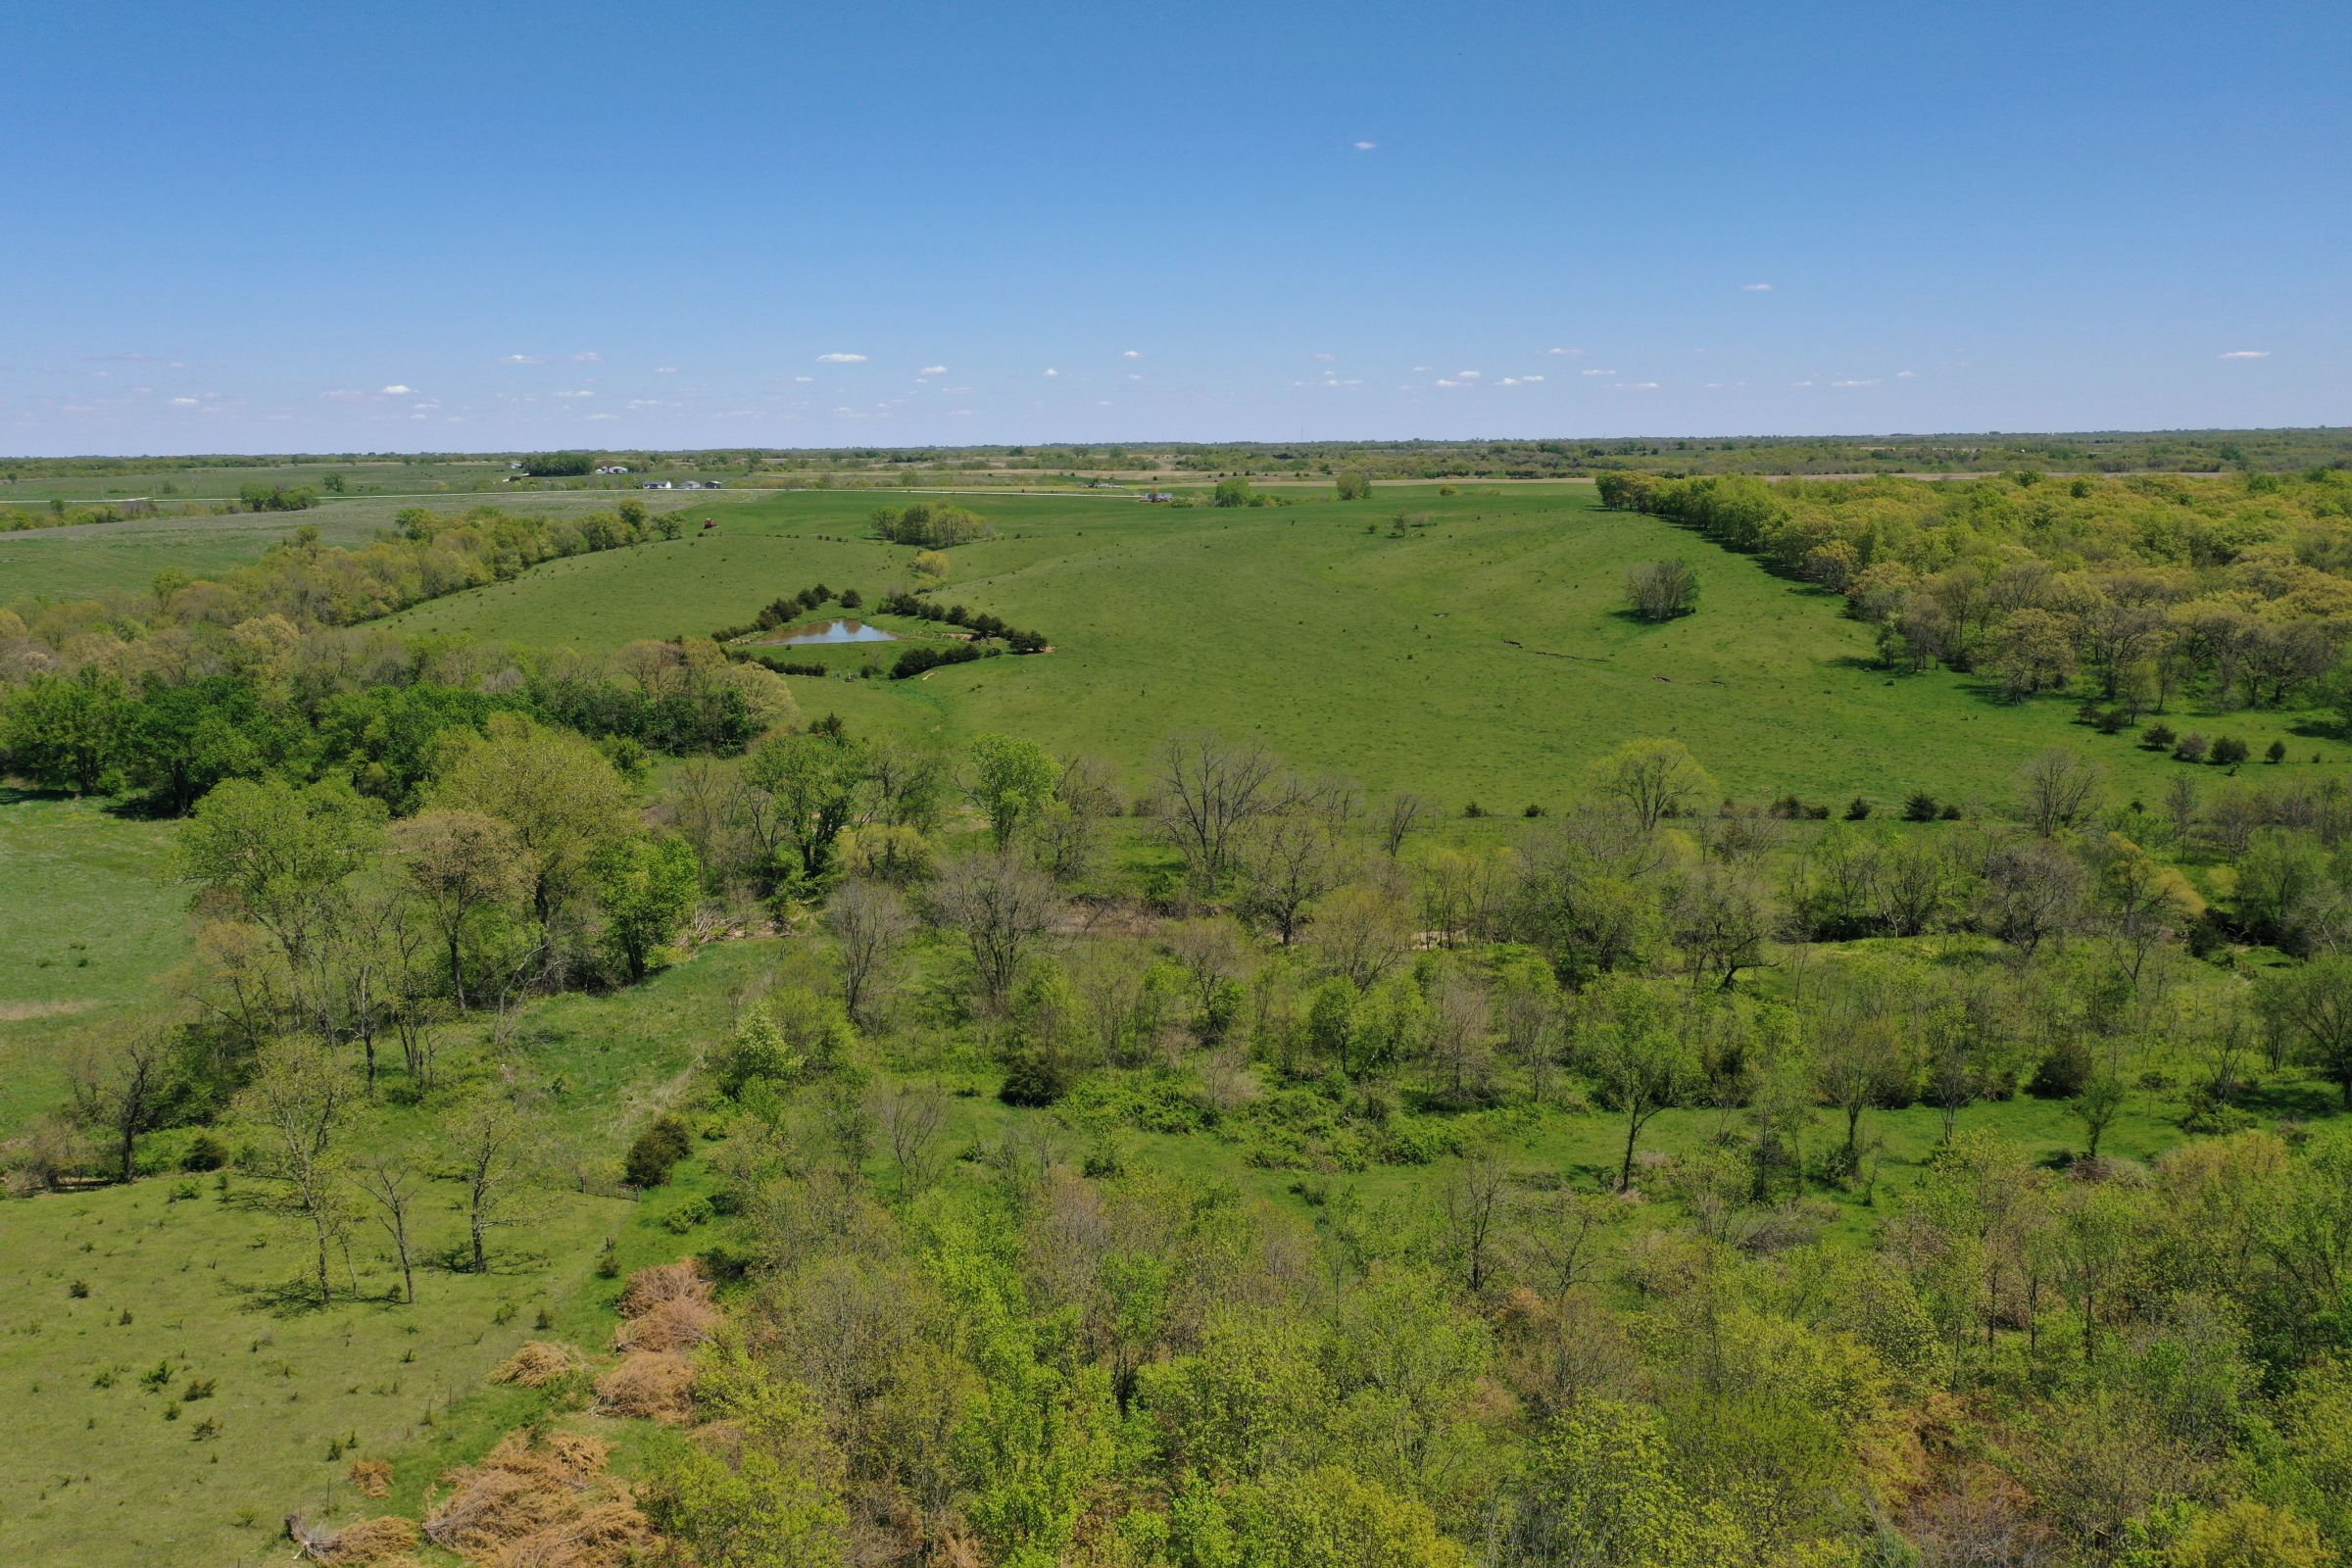 land-decatur-county-iowa-99-acres-listing-number-15525-2-2021-05-14-174318.JPG